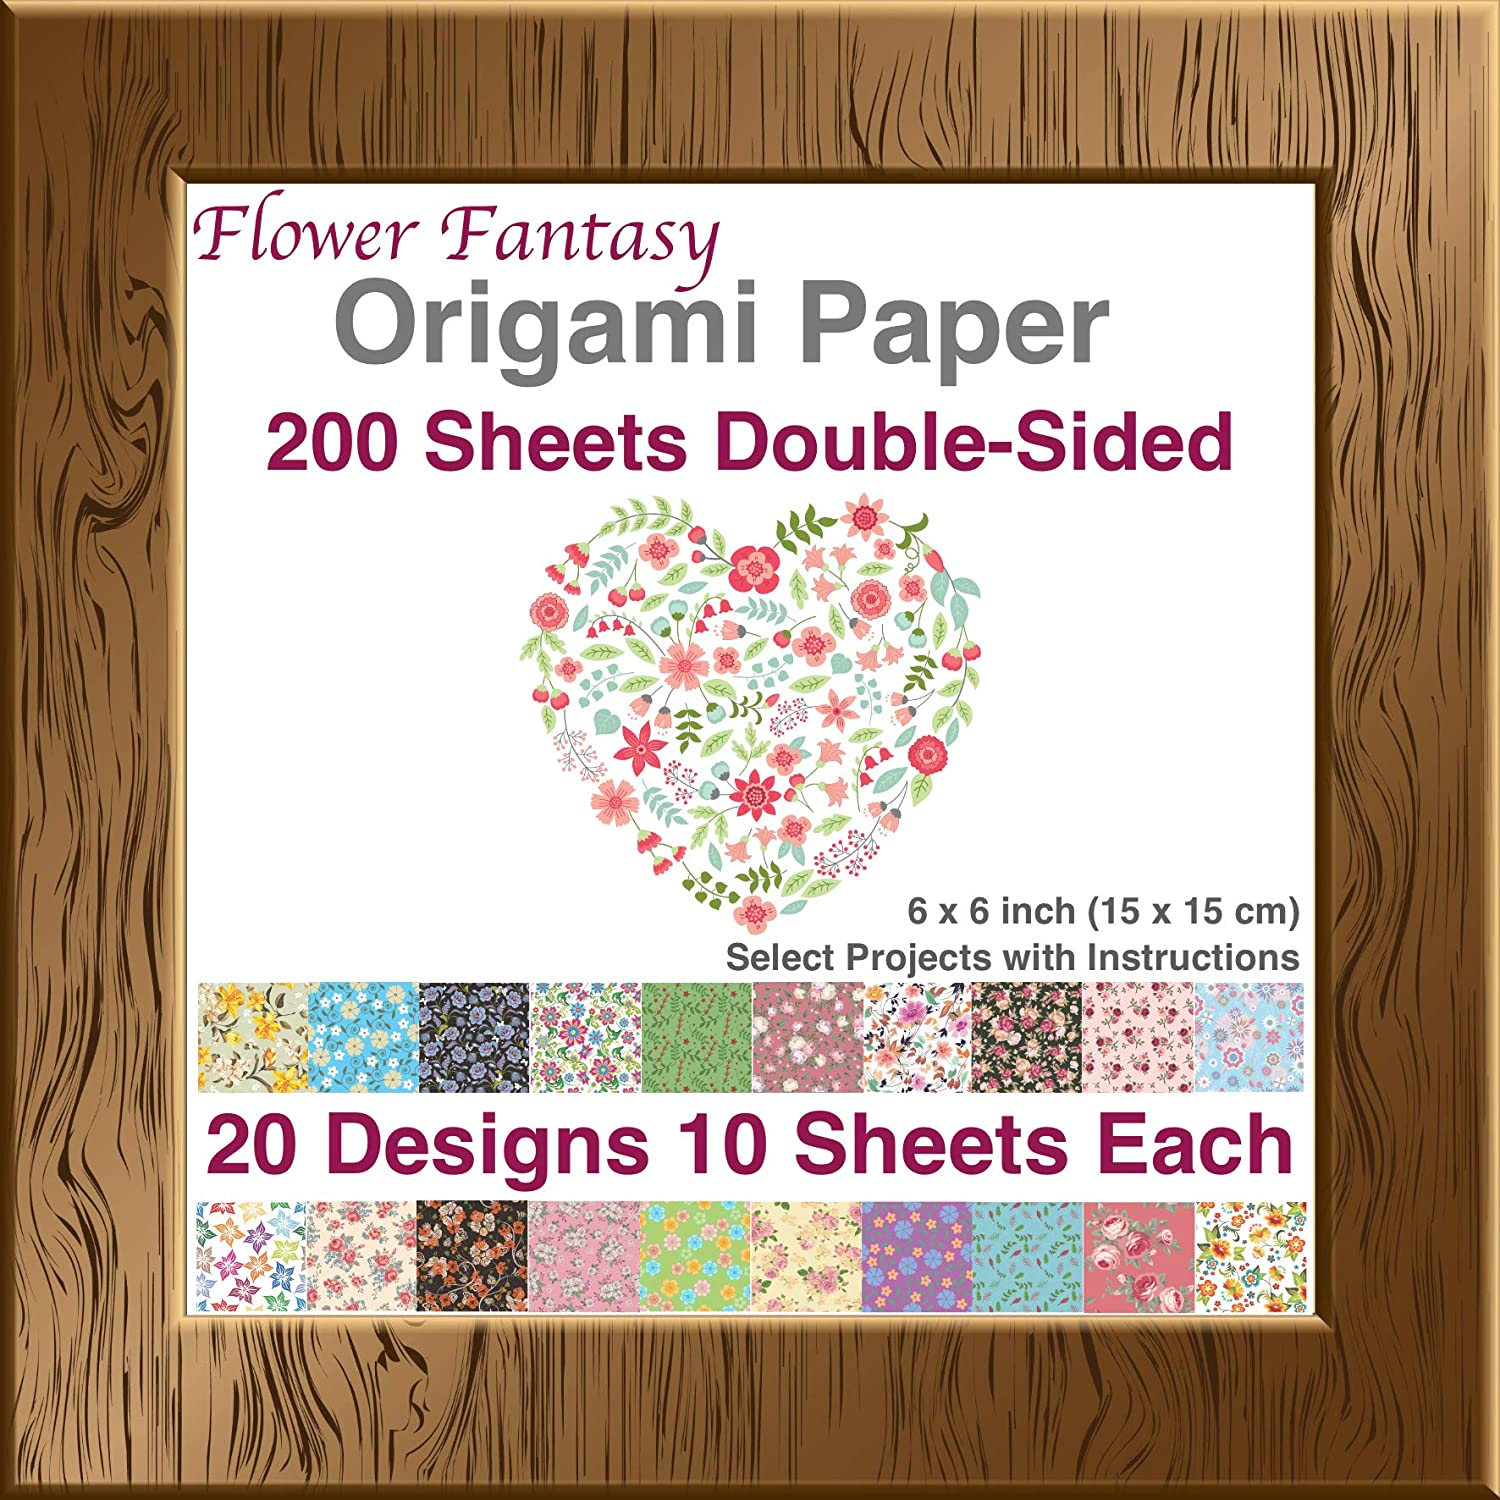 Premium Origami Paper of Japanese Washi and Moroccan Mosaic Patterns Decoration and Kids 20 Beautiful Designs 6x6 inch Double Sided 100 Sheets Easy Folding for Paper Crafts